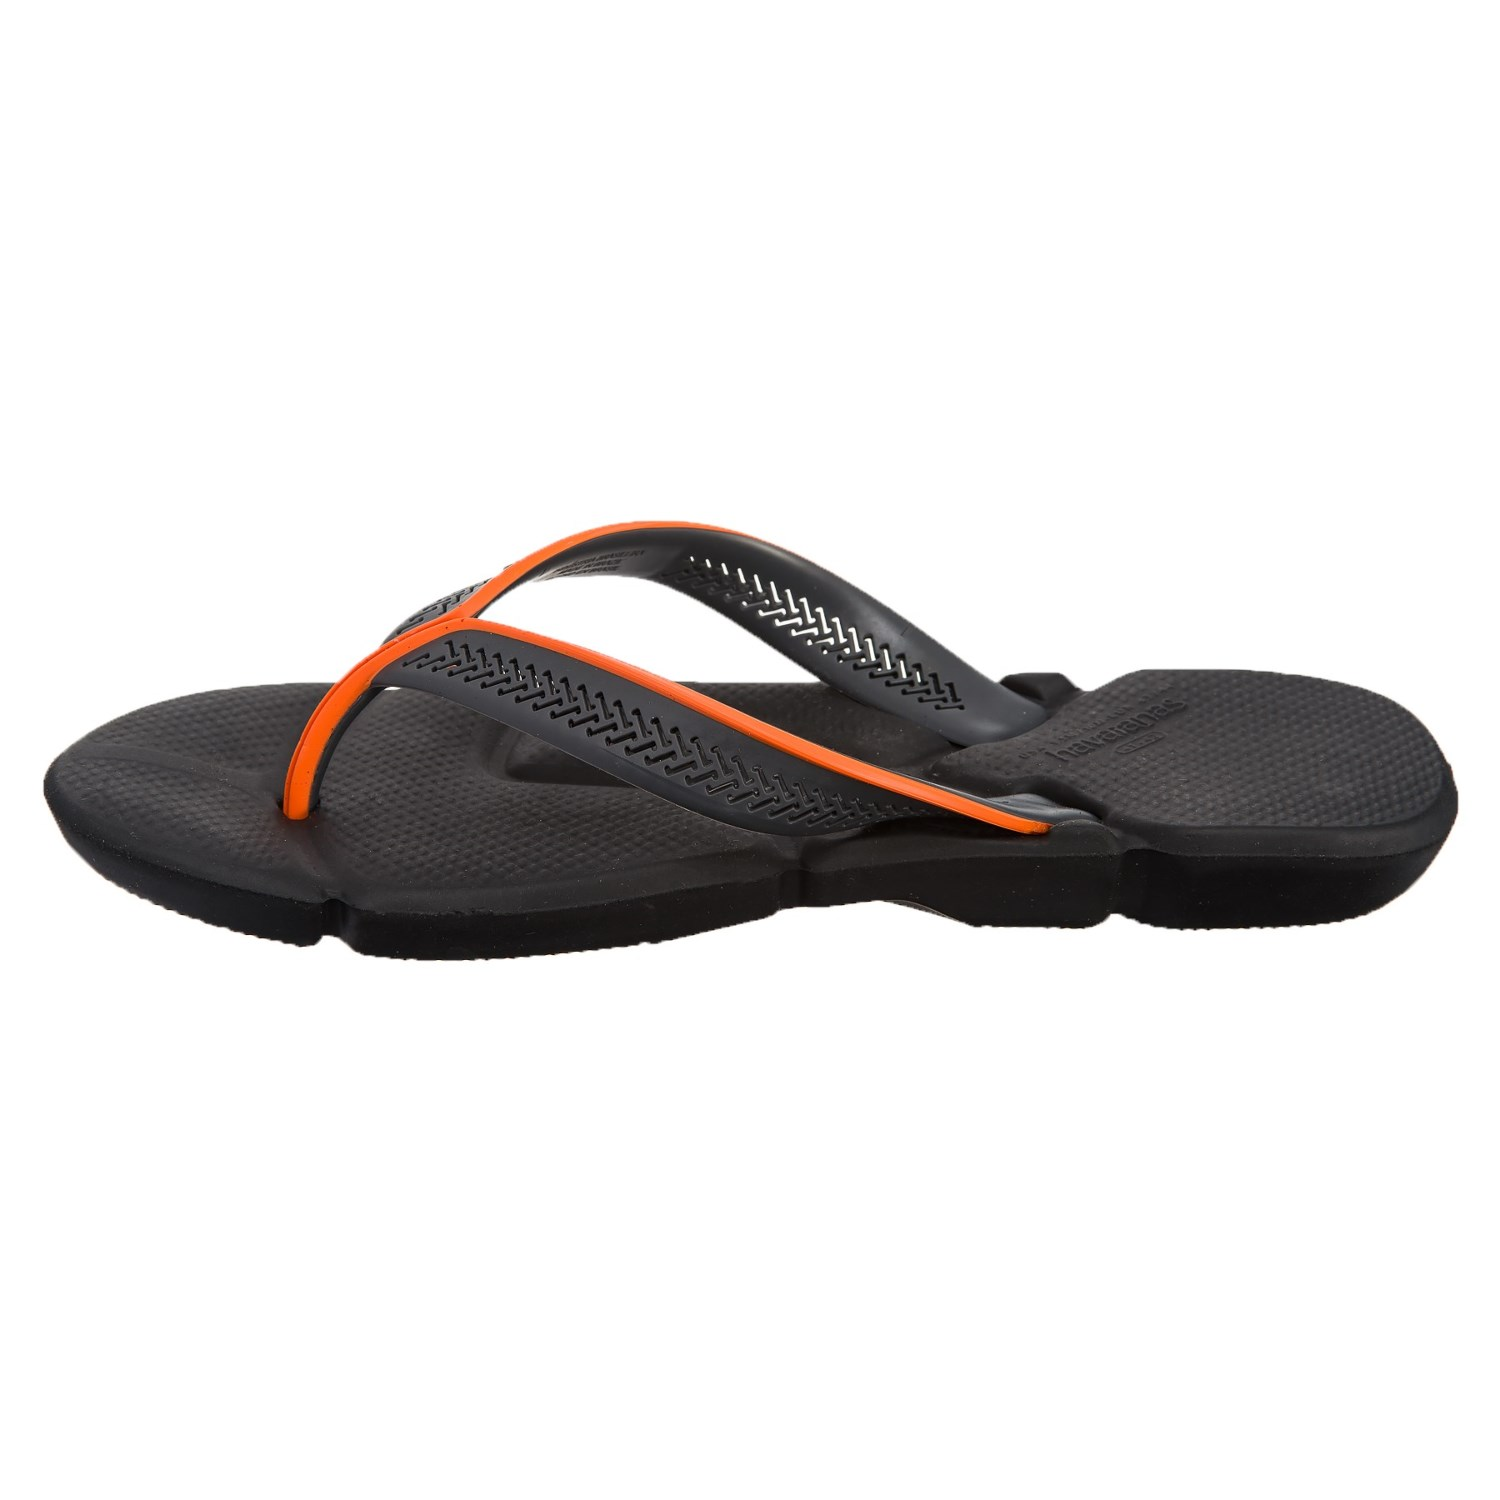 4214f2491 Havaianas Power Flip-Flops (For Men) - Save 58%